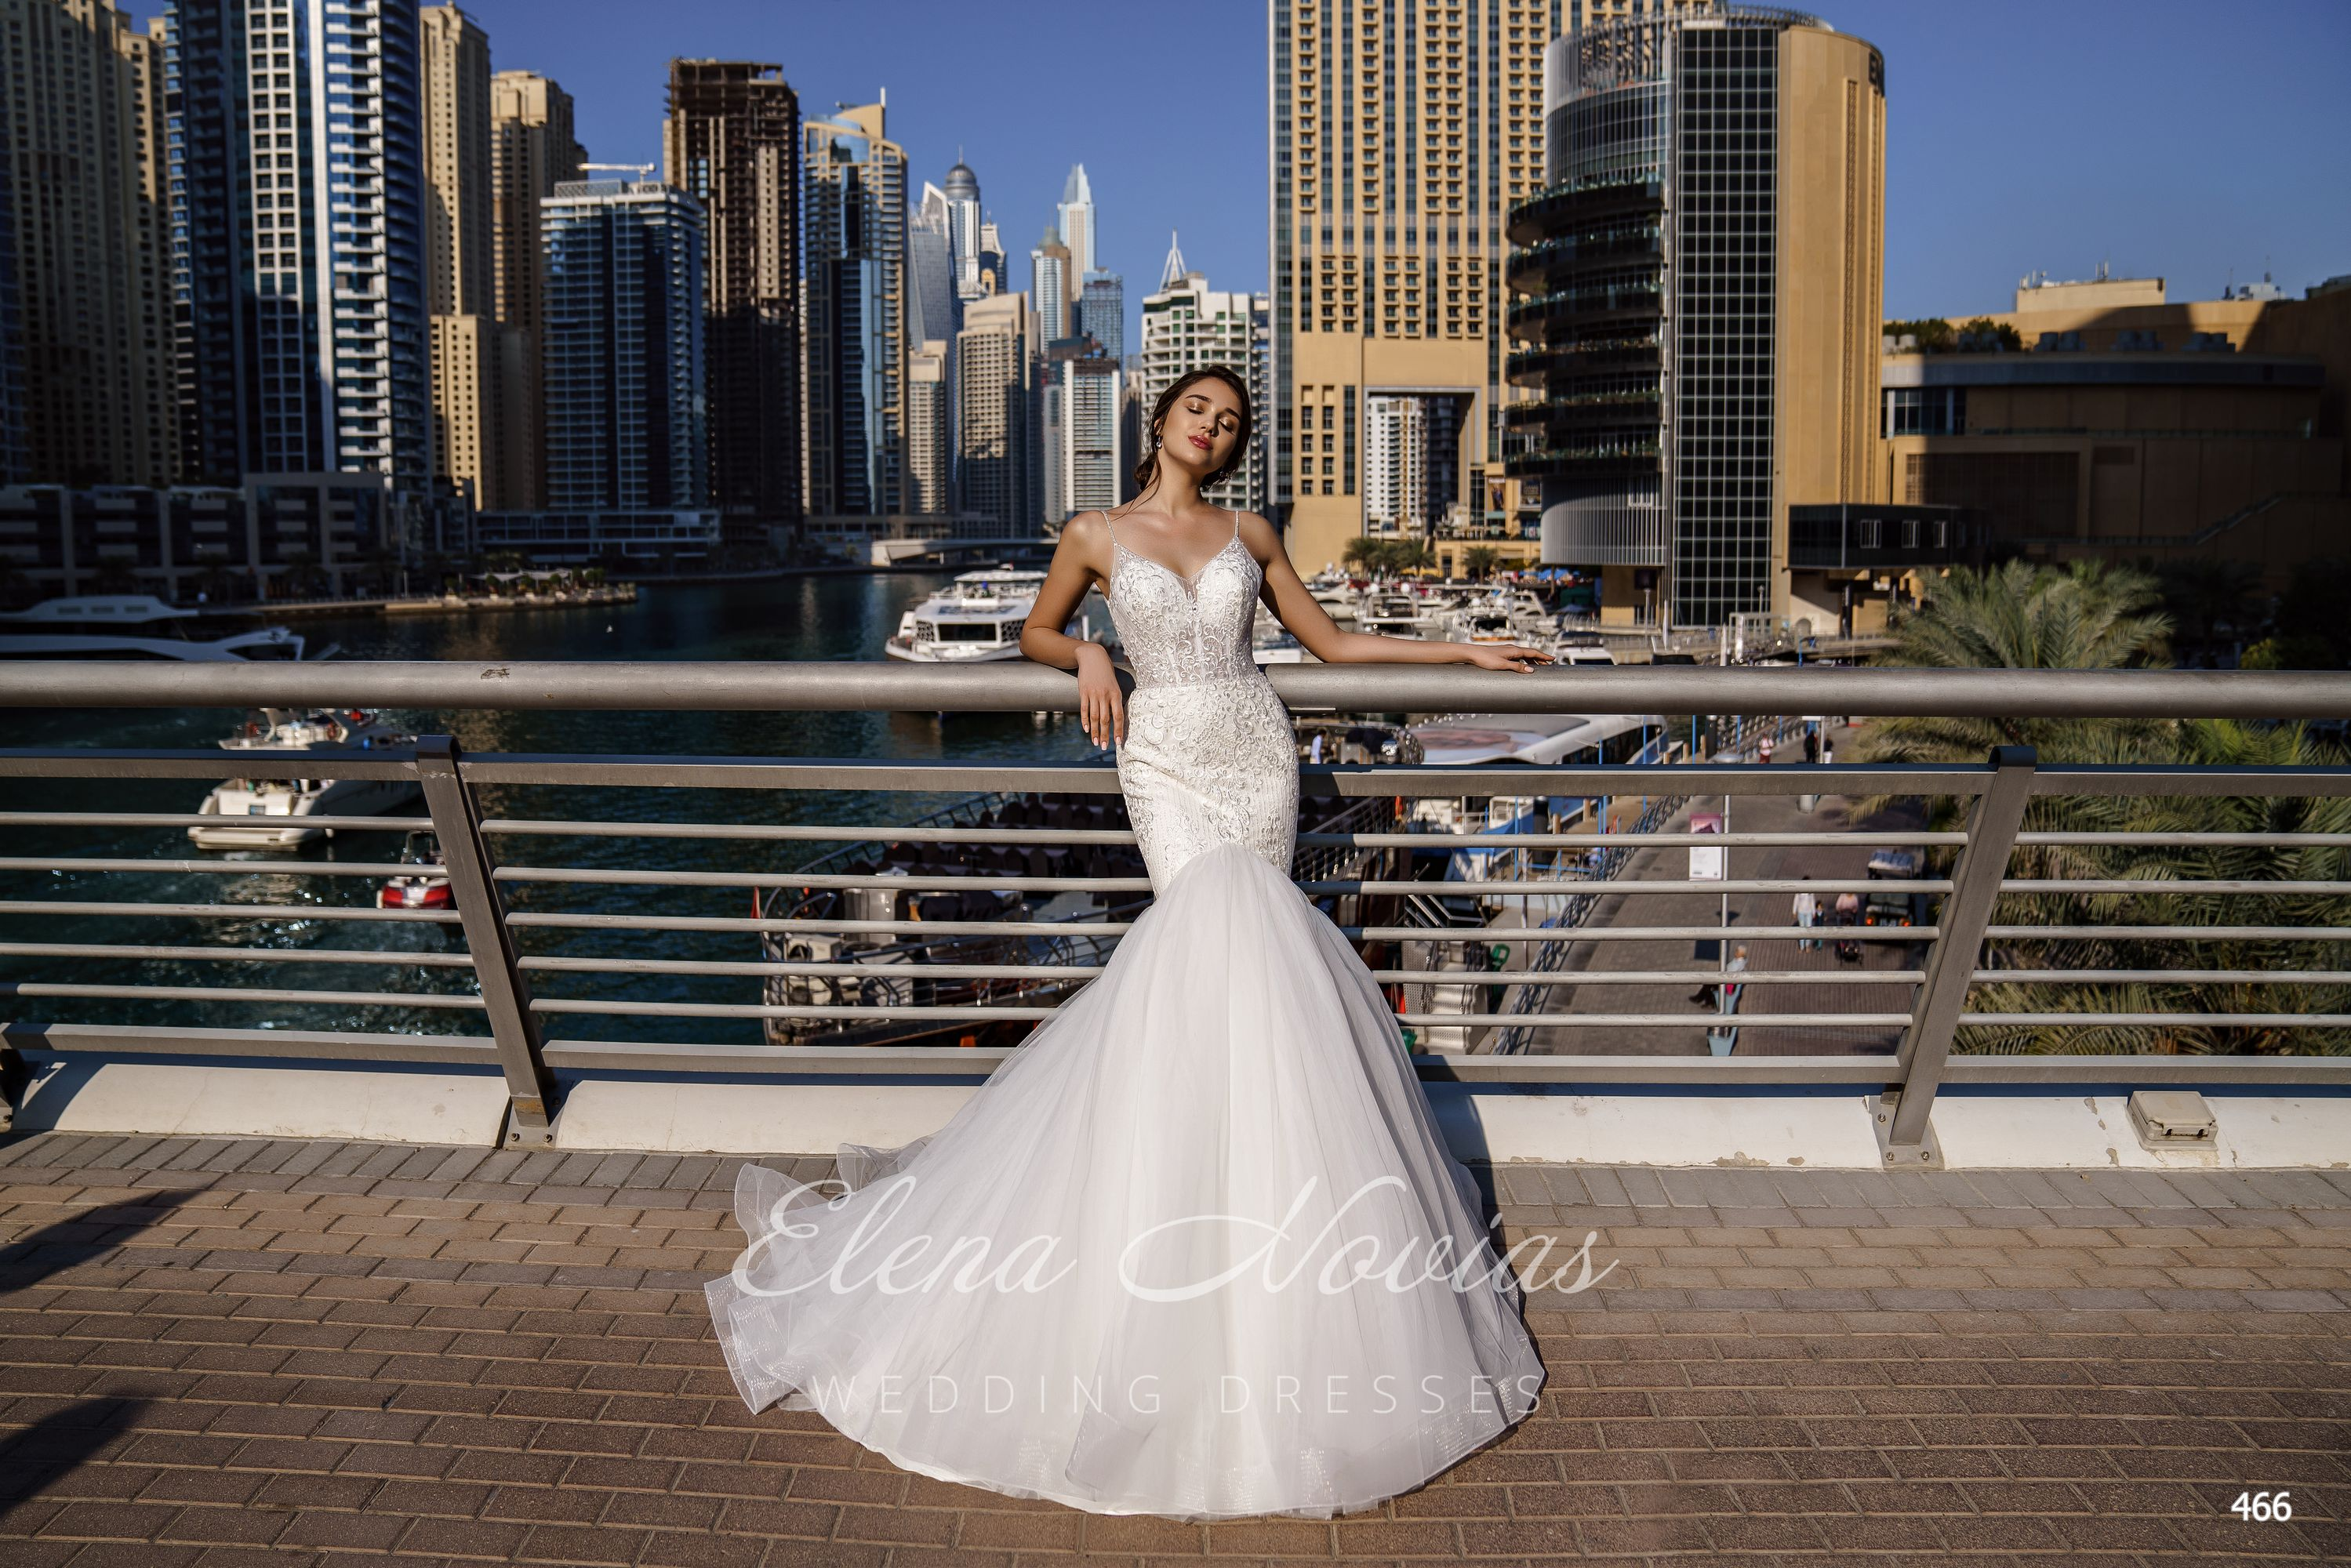 Wedding dresses 466 1